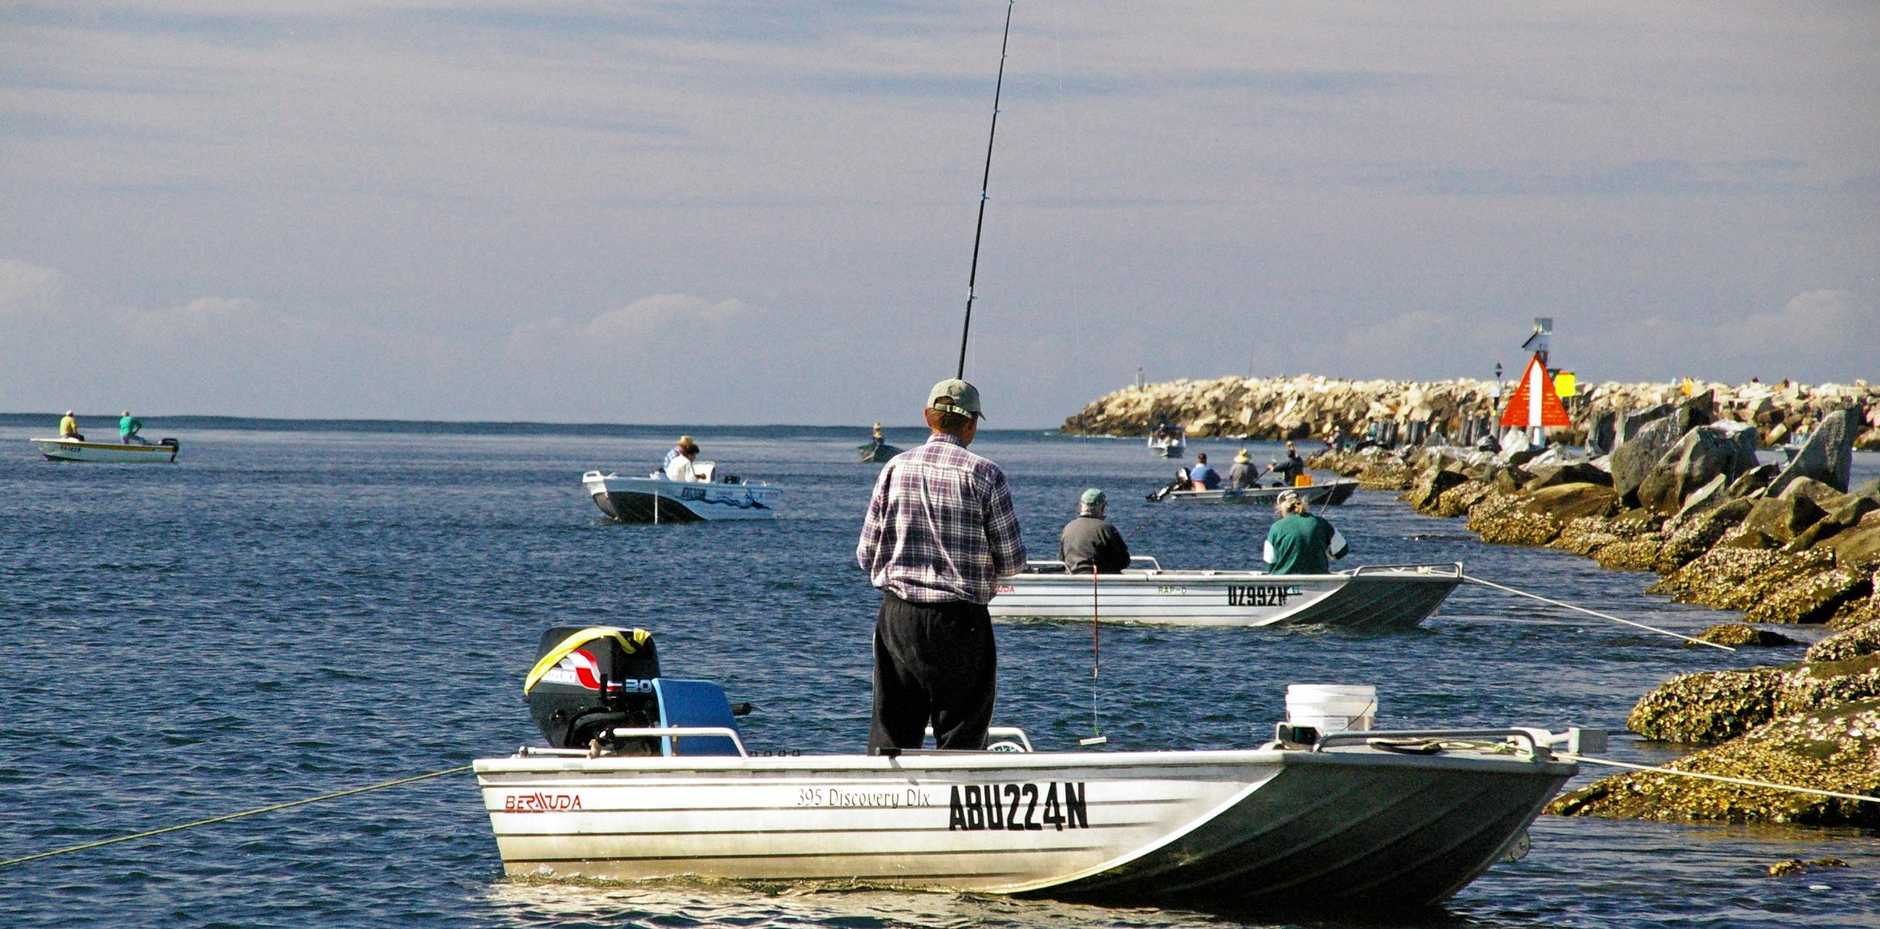 Members of the seafood industry are challenging the public's negative perception about their practices.